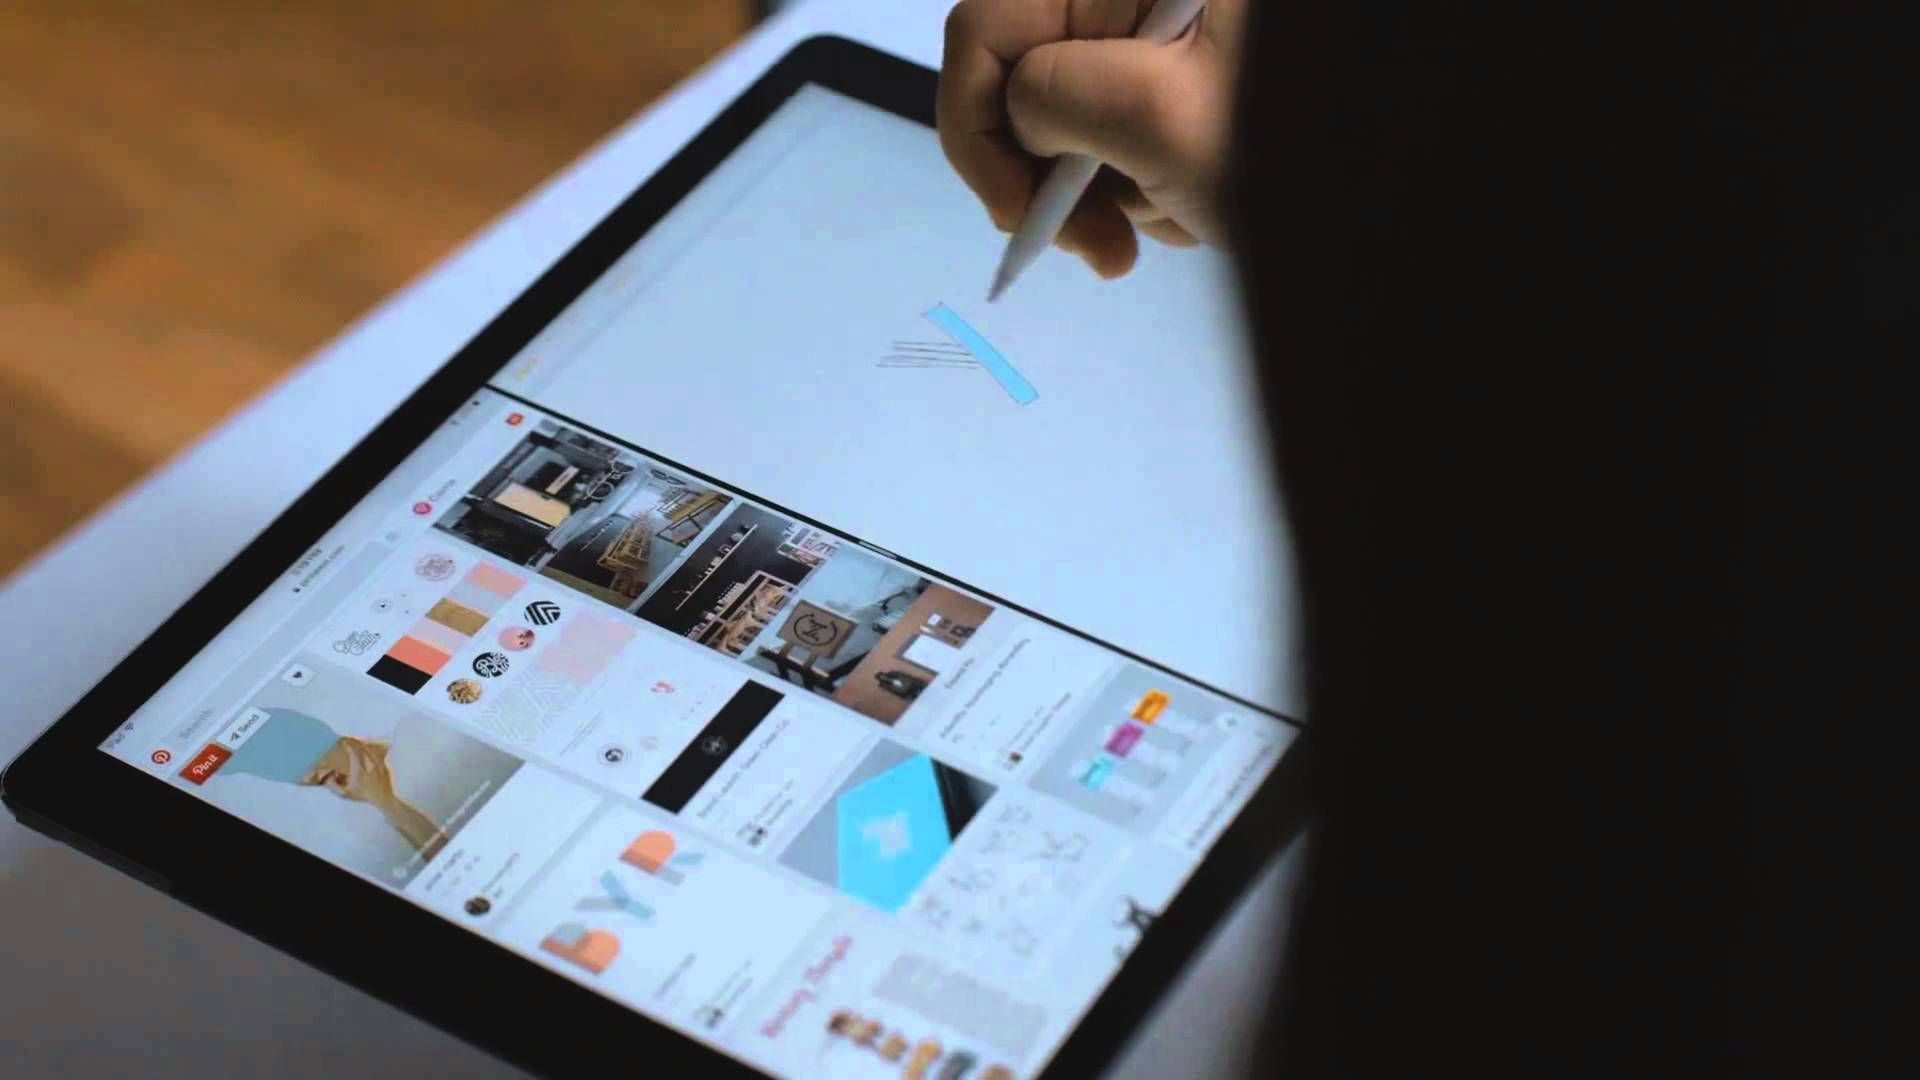 Vox Product designer reviews the iPad Pro   iPad Pro Review